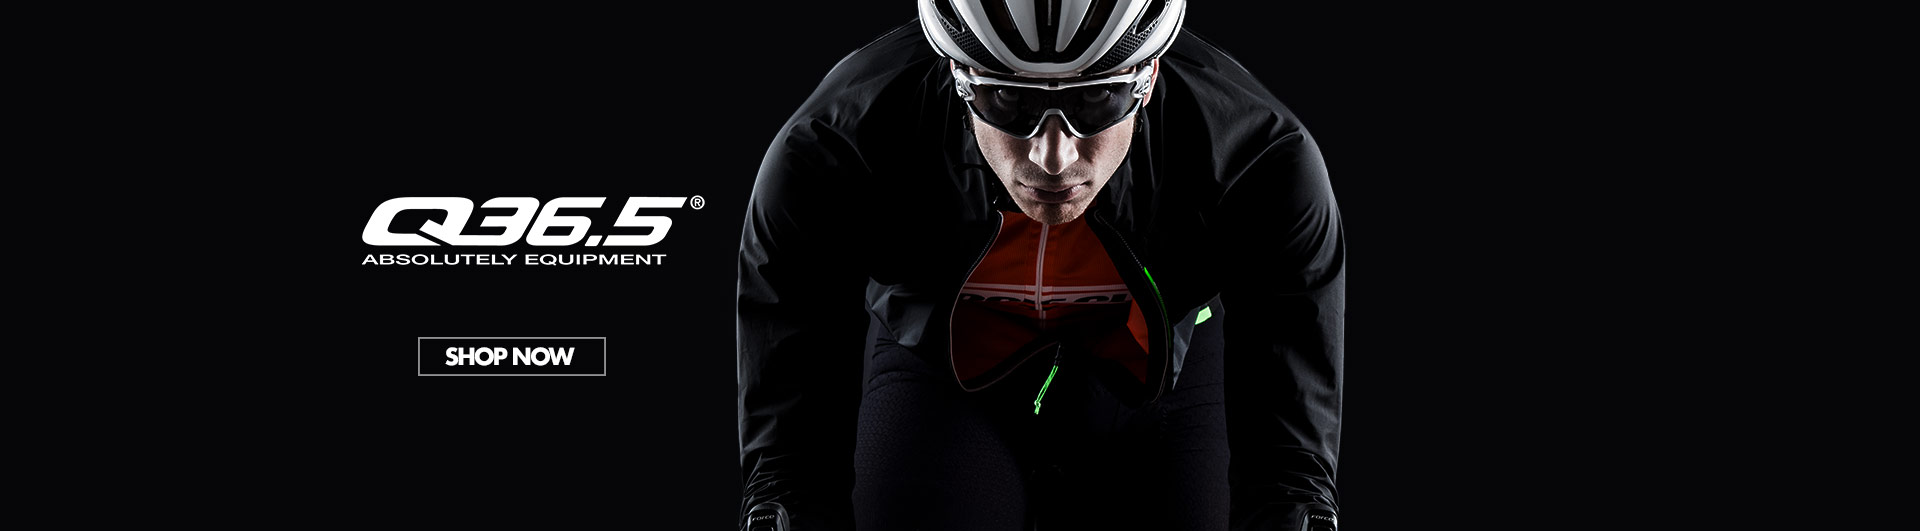 Q36.5 IS AN EXTREME VISION OF THE FUTURE OF CYCLING CLOTHING